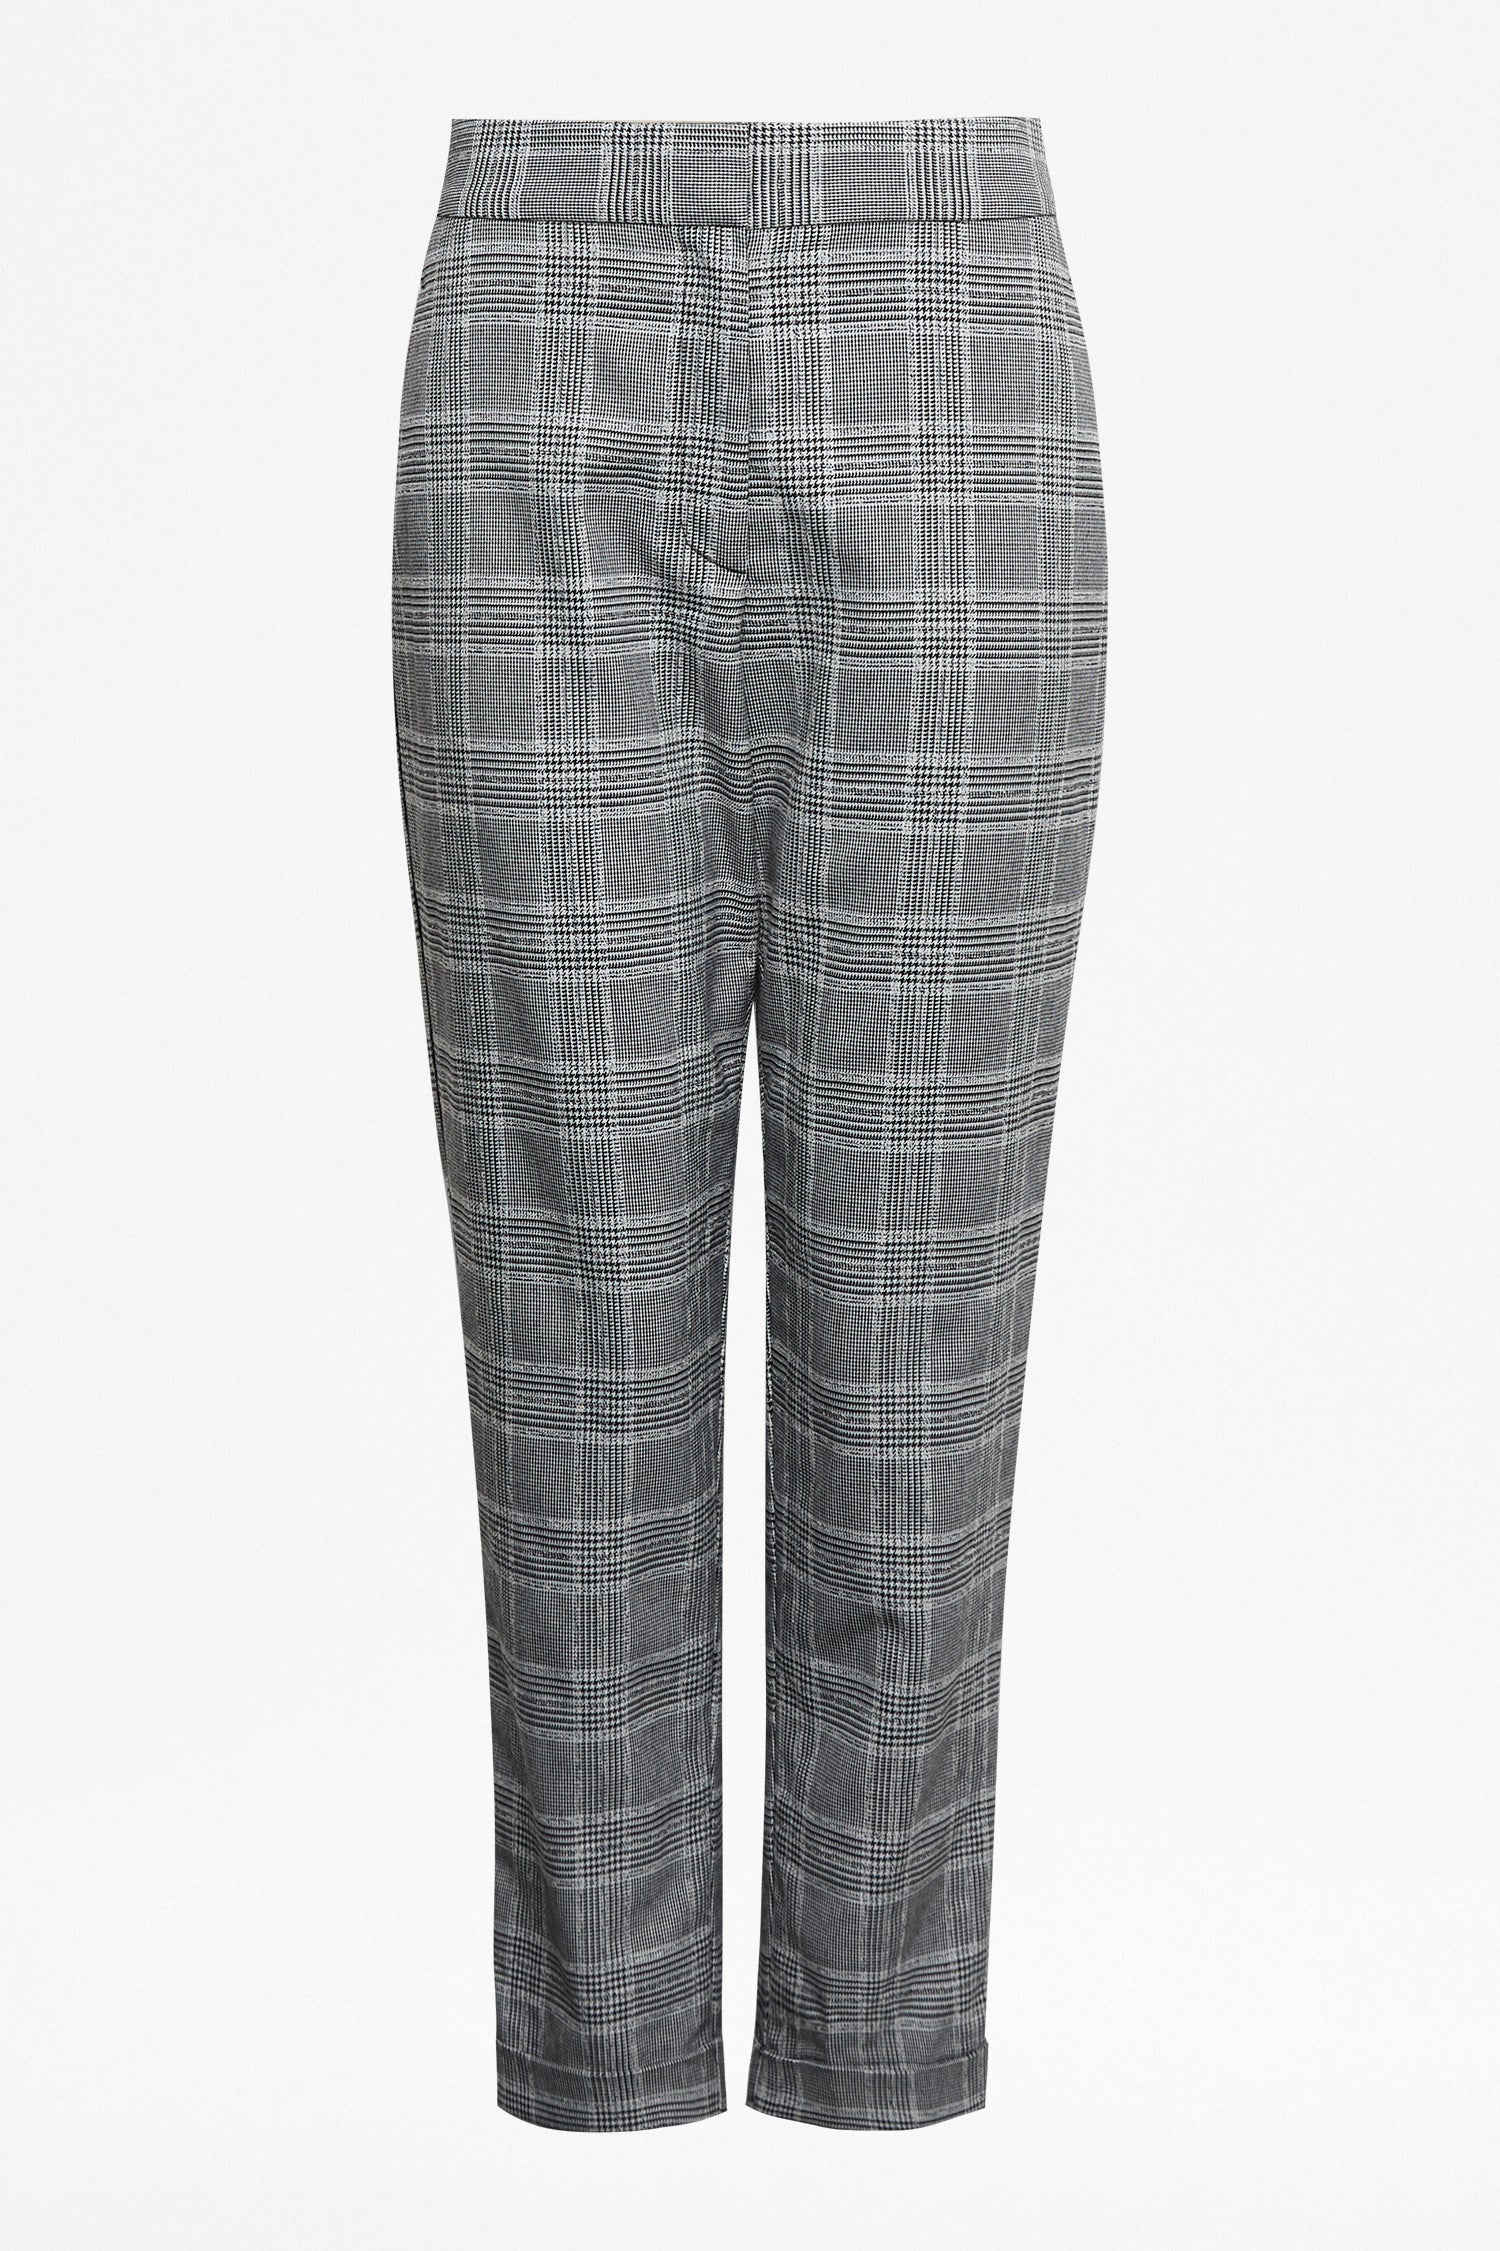 Great Plains Paradis Check Trousers for Ladies in Black